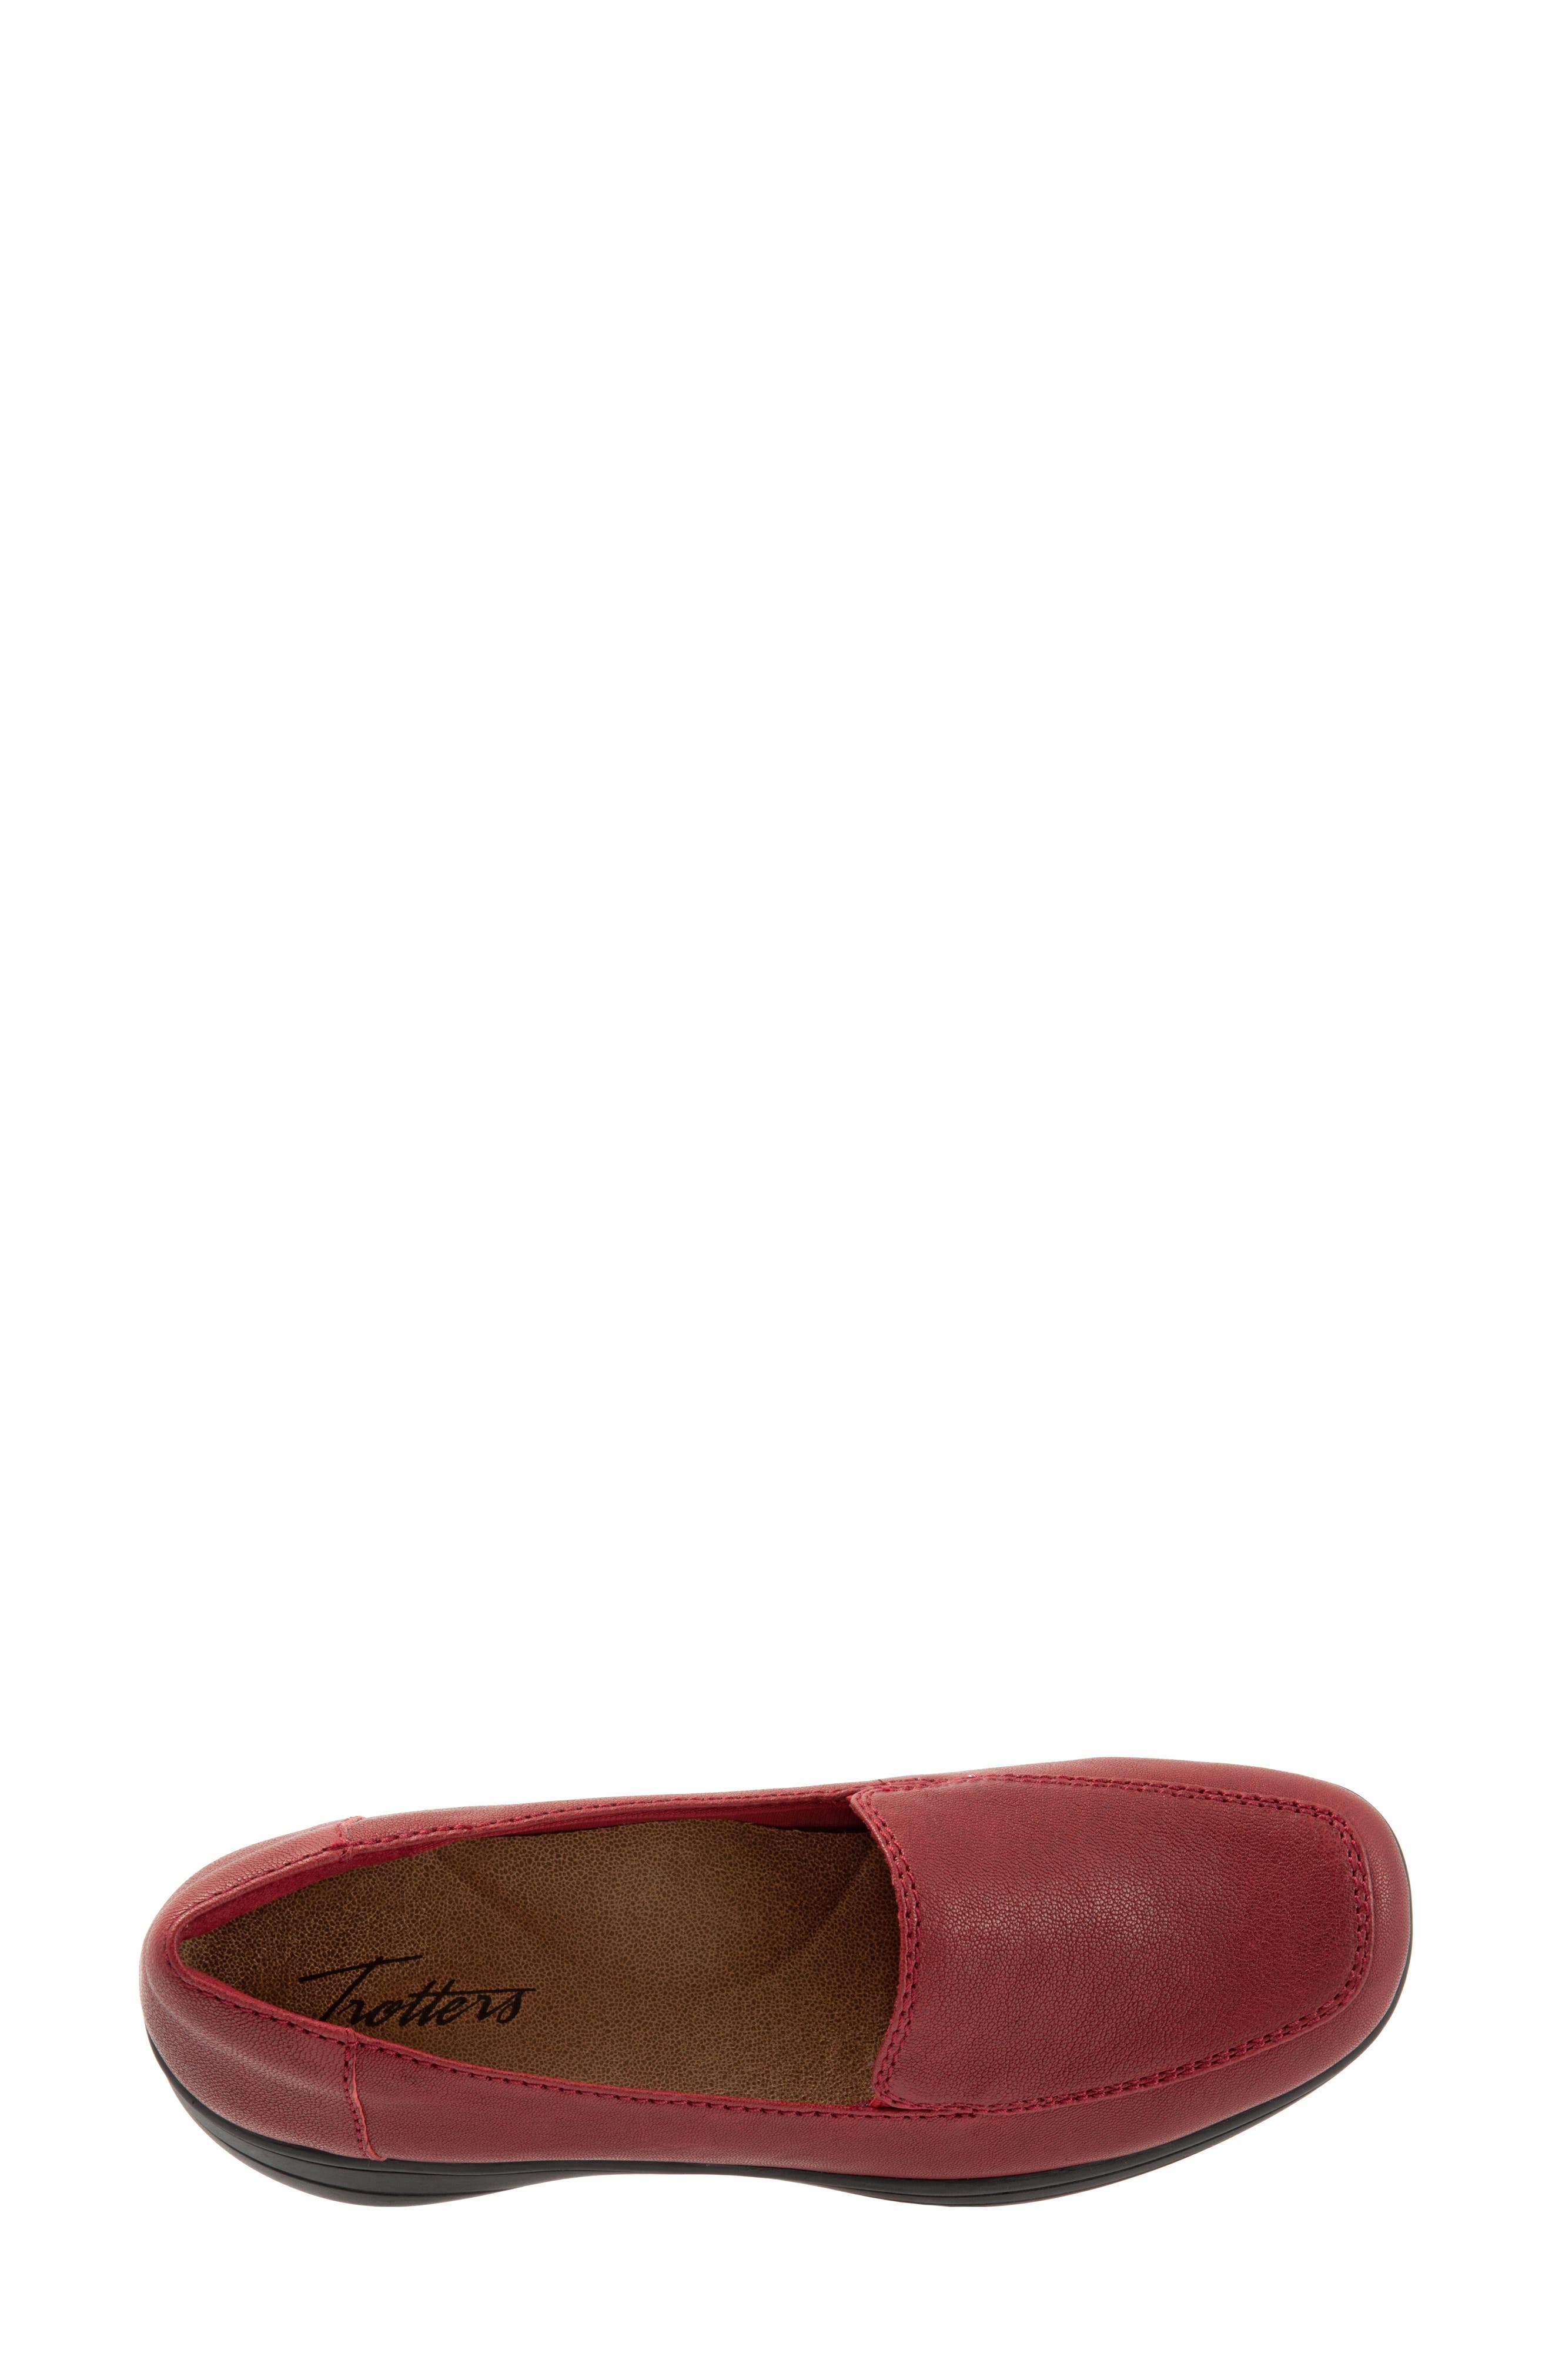 Jacob Loafer,                             Alternate thumbnail 5, color,                             DARK RED LEATHER